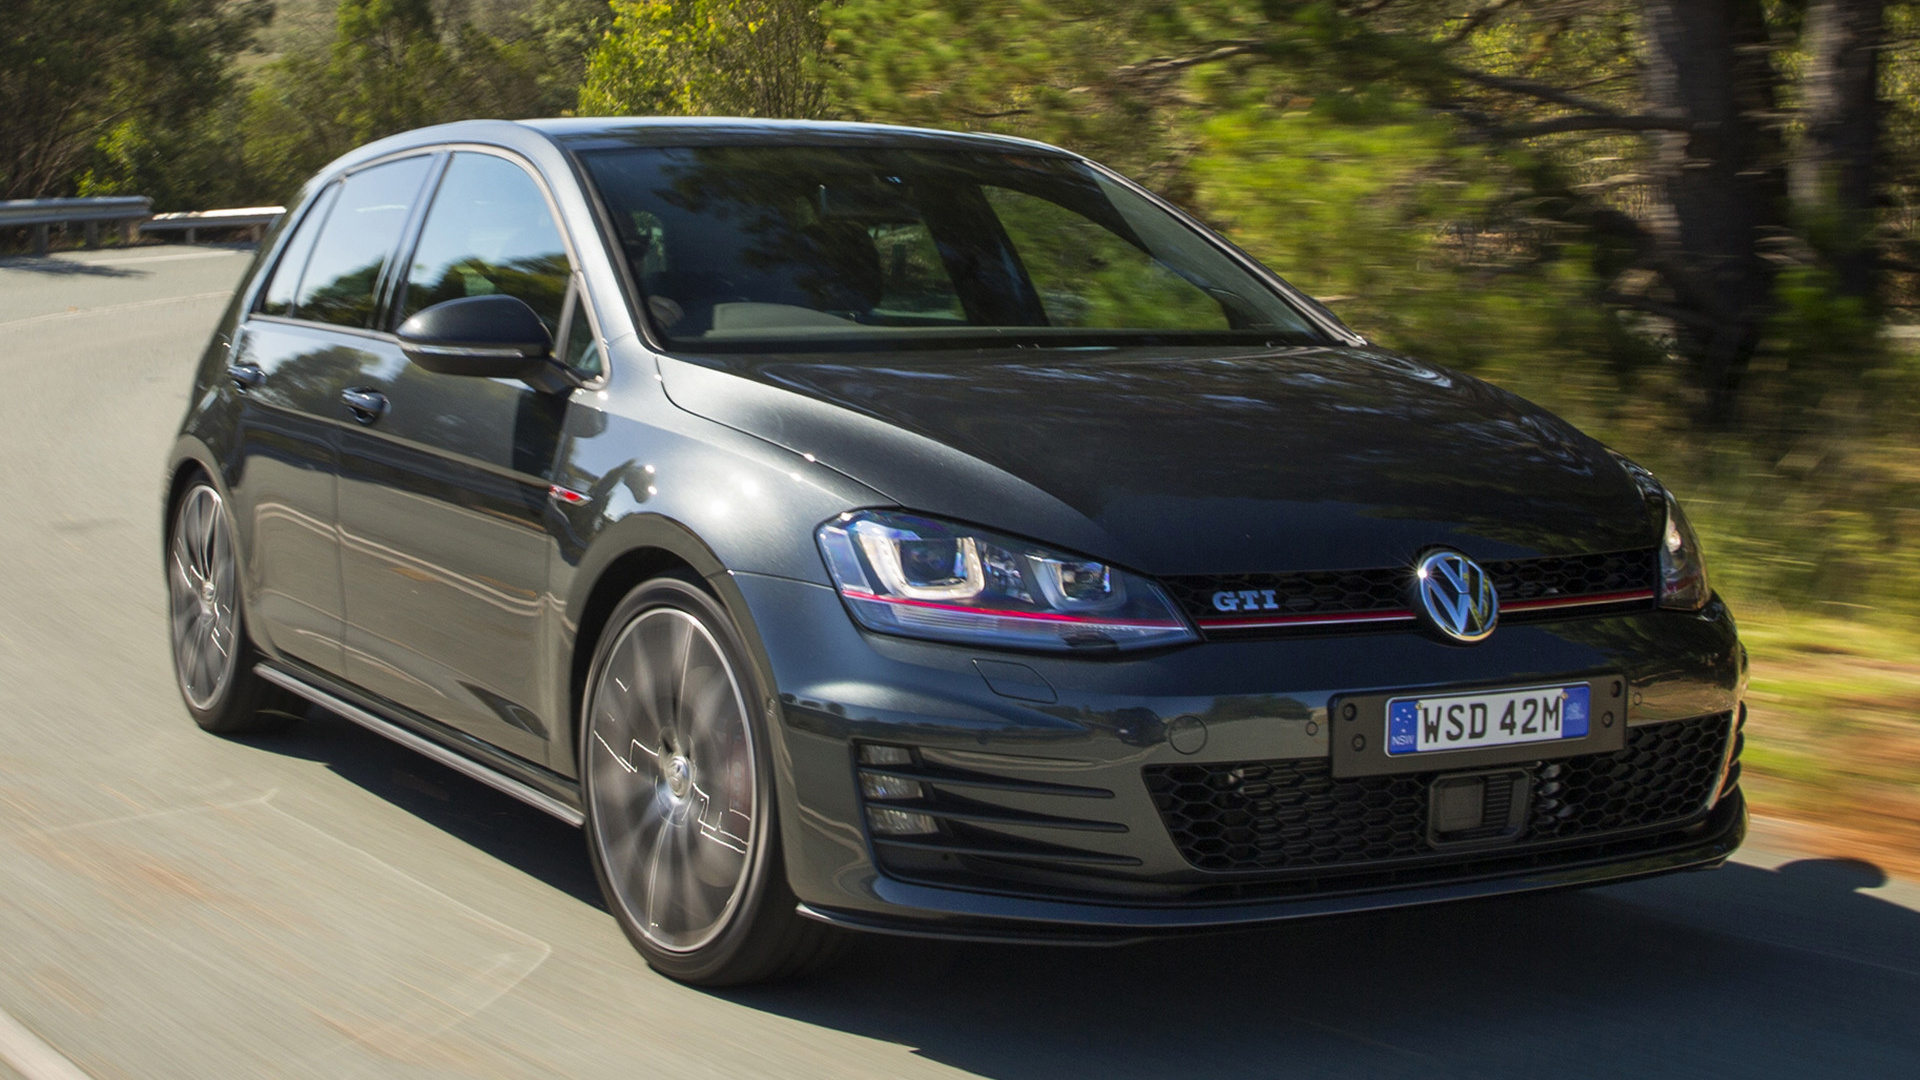 2014 Volkswagen Golf Gti Performance 5 Door Au Fondos De